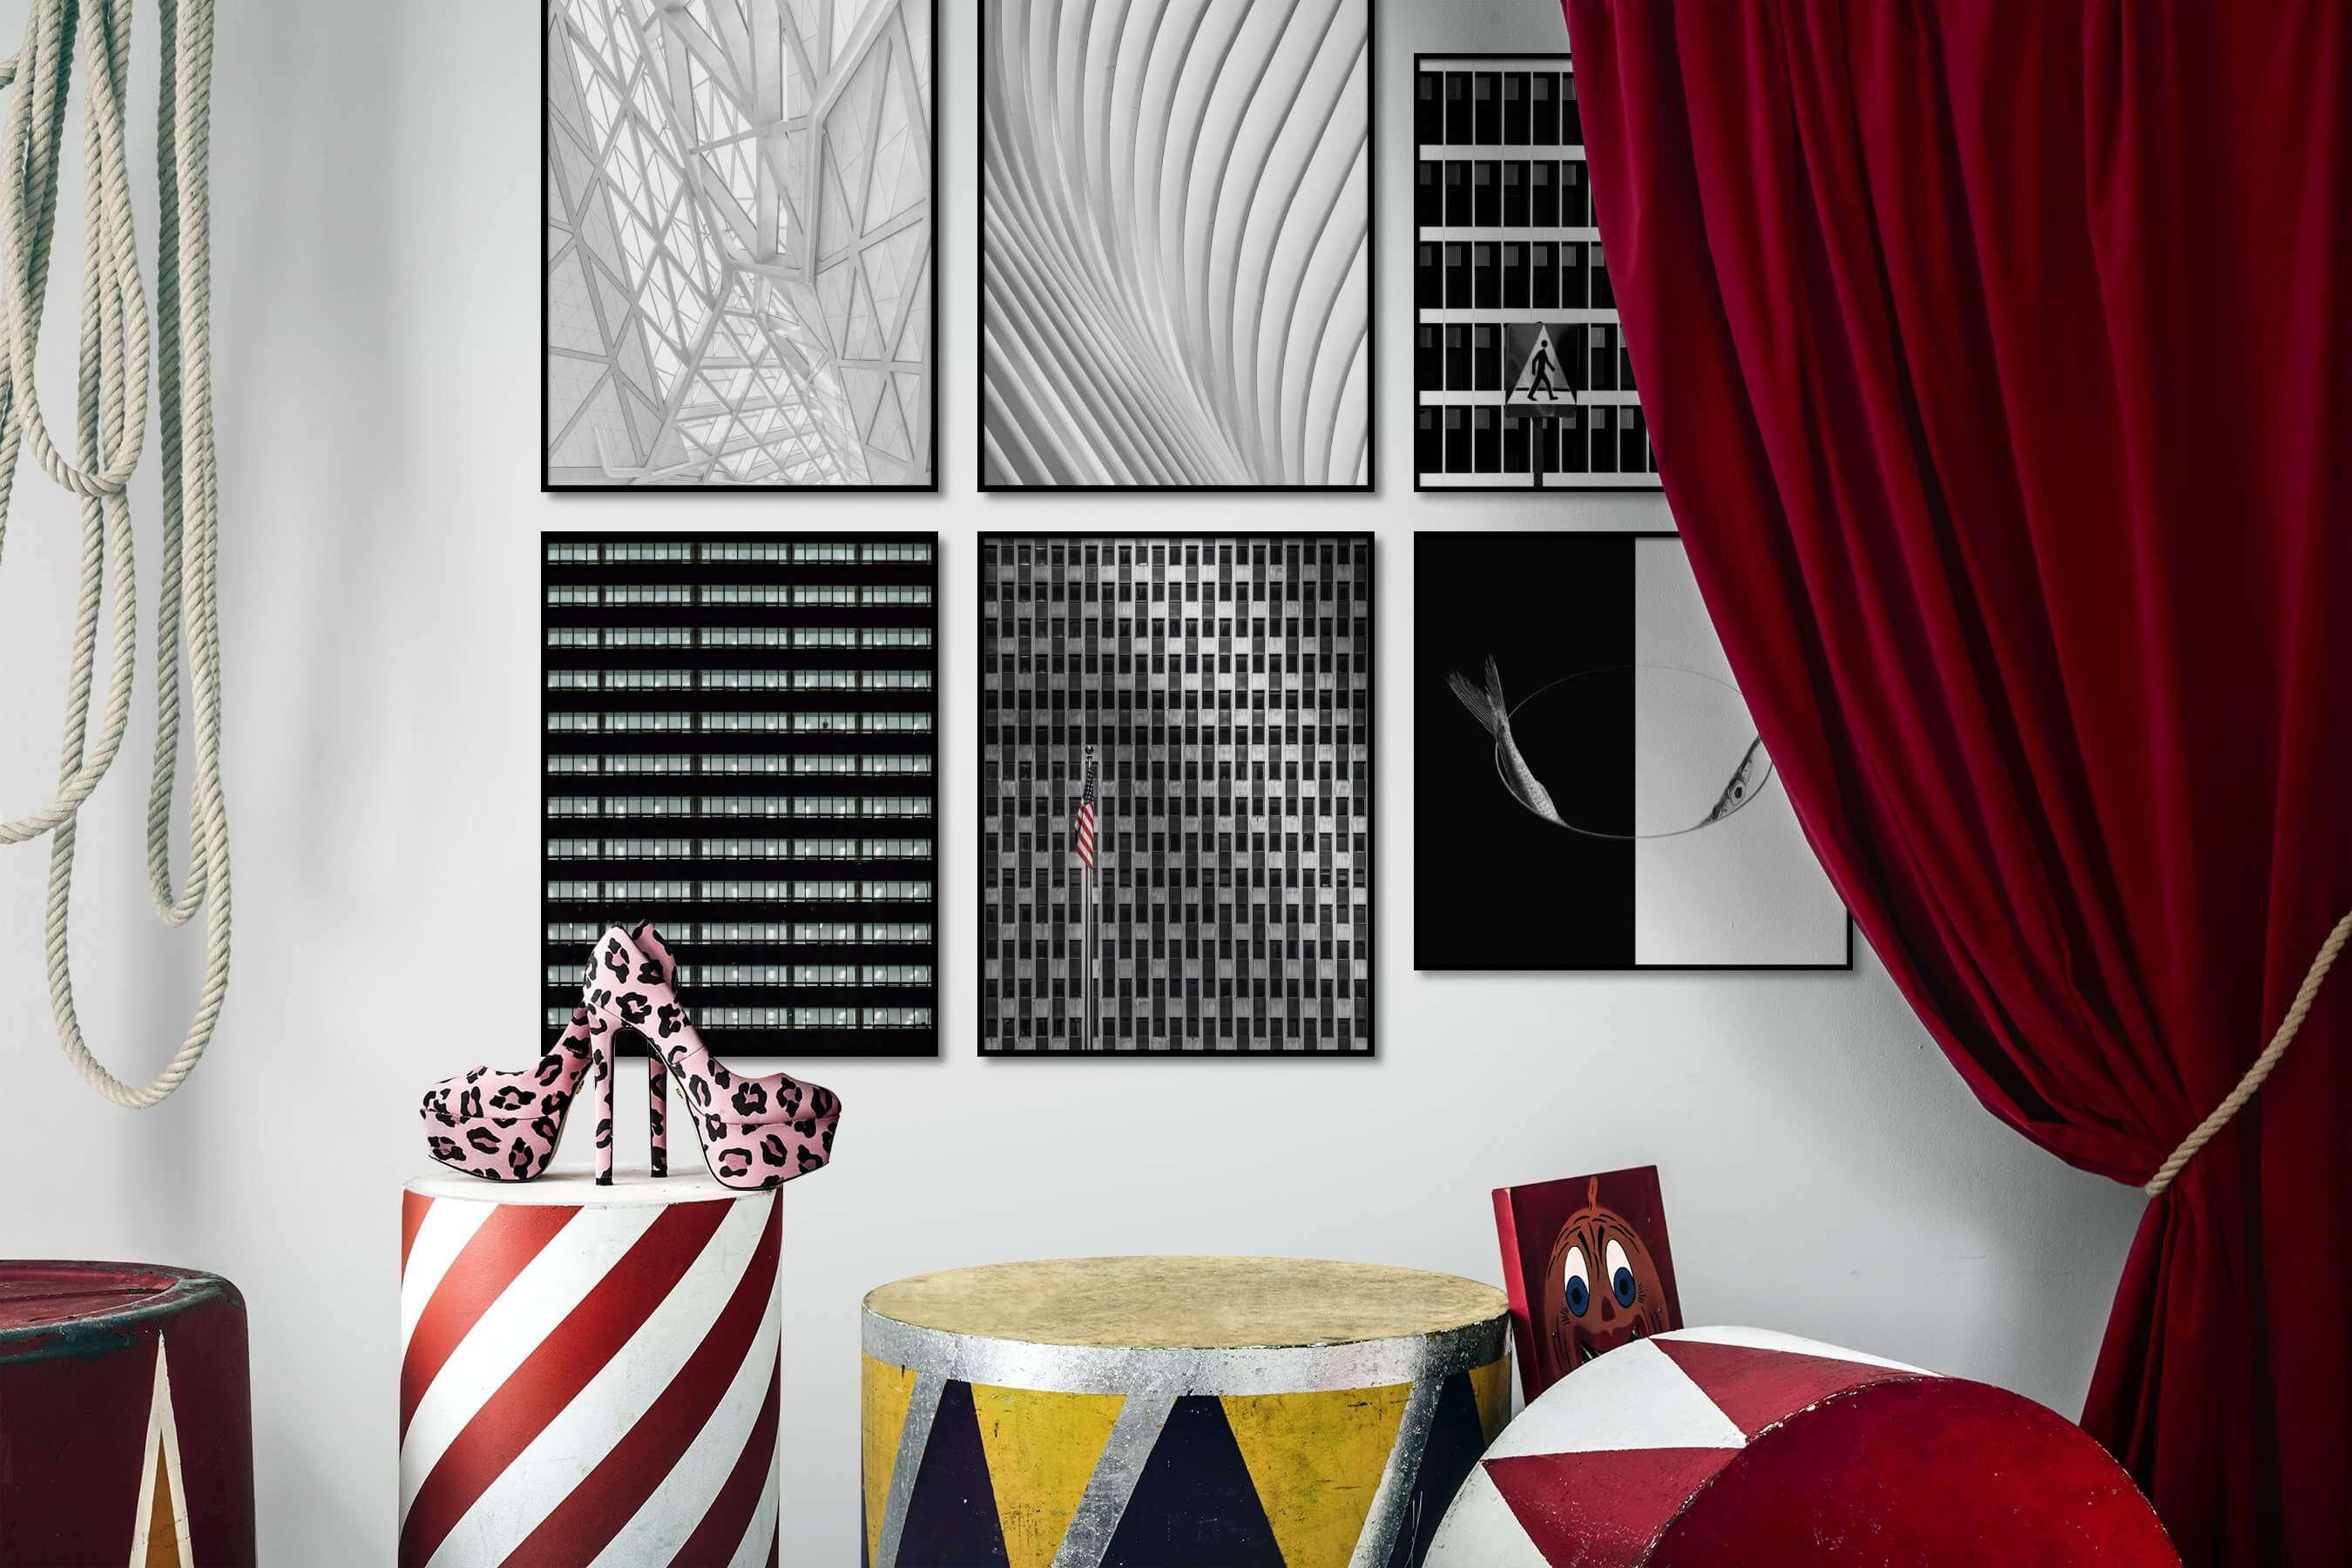 Gallery wall idea with six framed pictures arranged on a wall depicting Black & White, For the Maximalist, City Life, Americana, For the Minimalist, and Animals